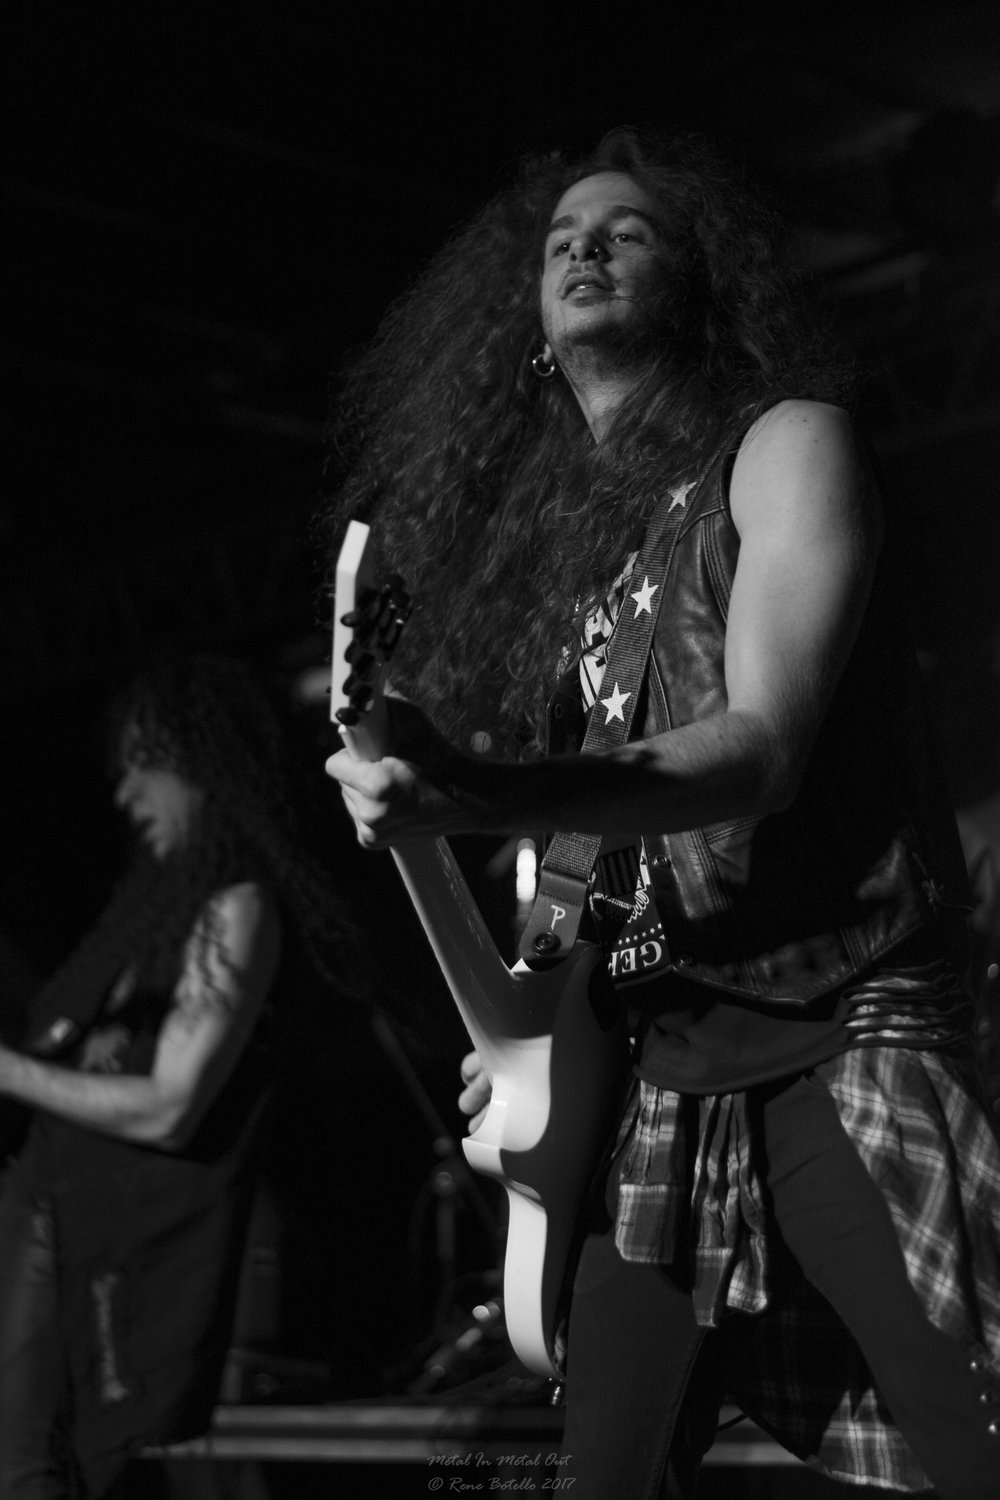 Marty Friedman Aug 17 2017-1628.jpg